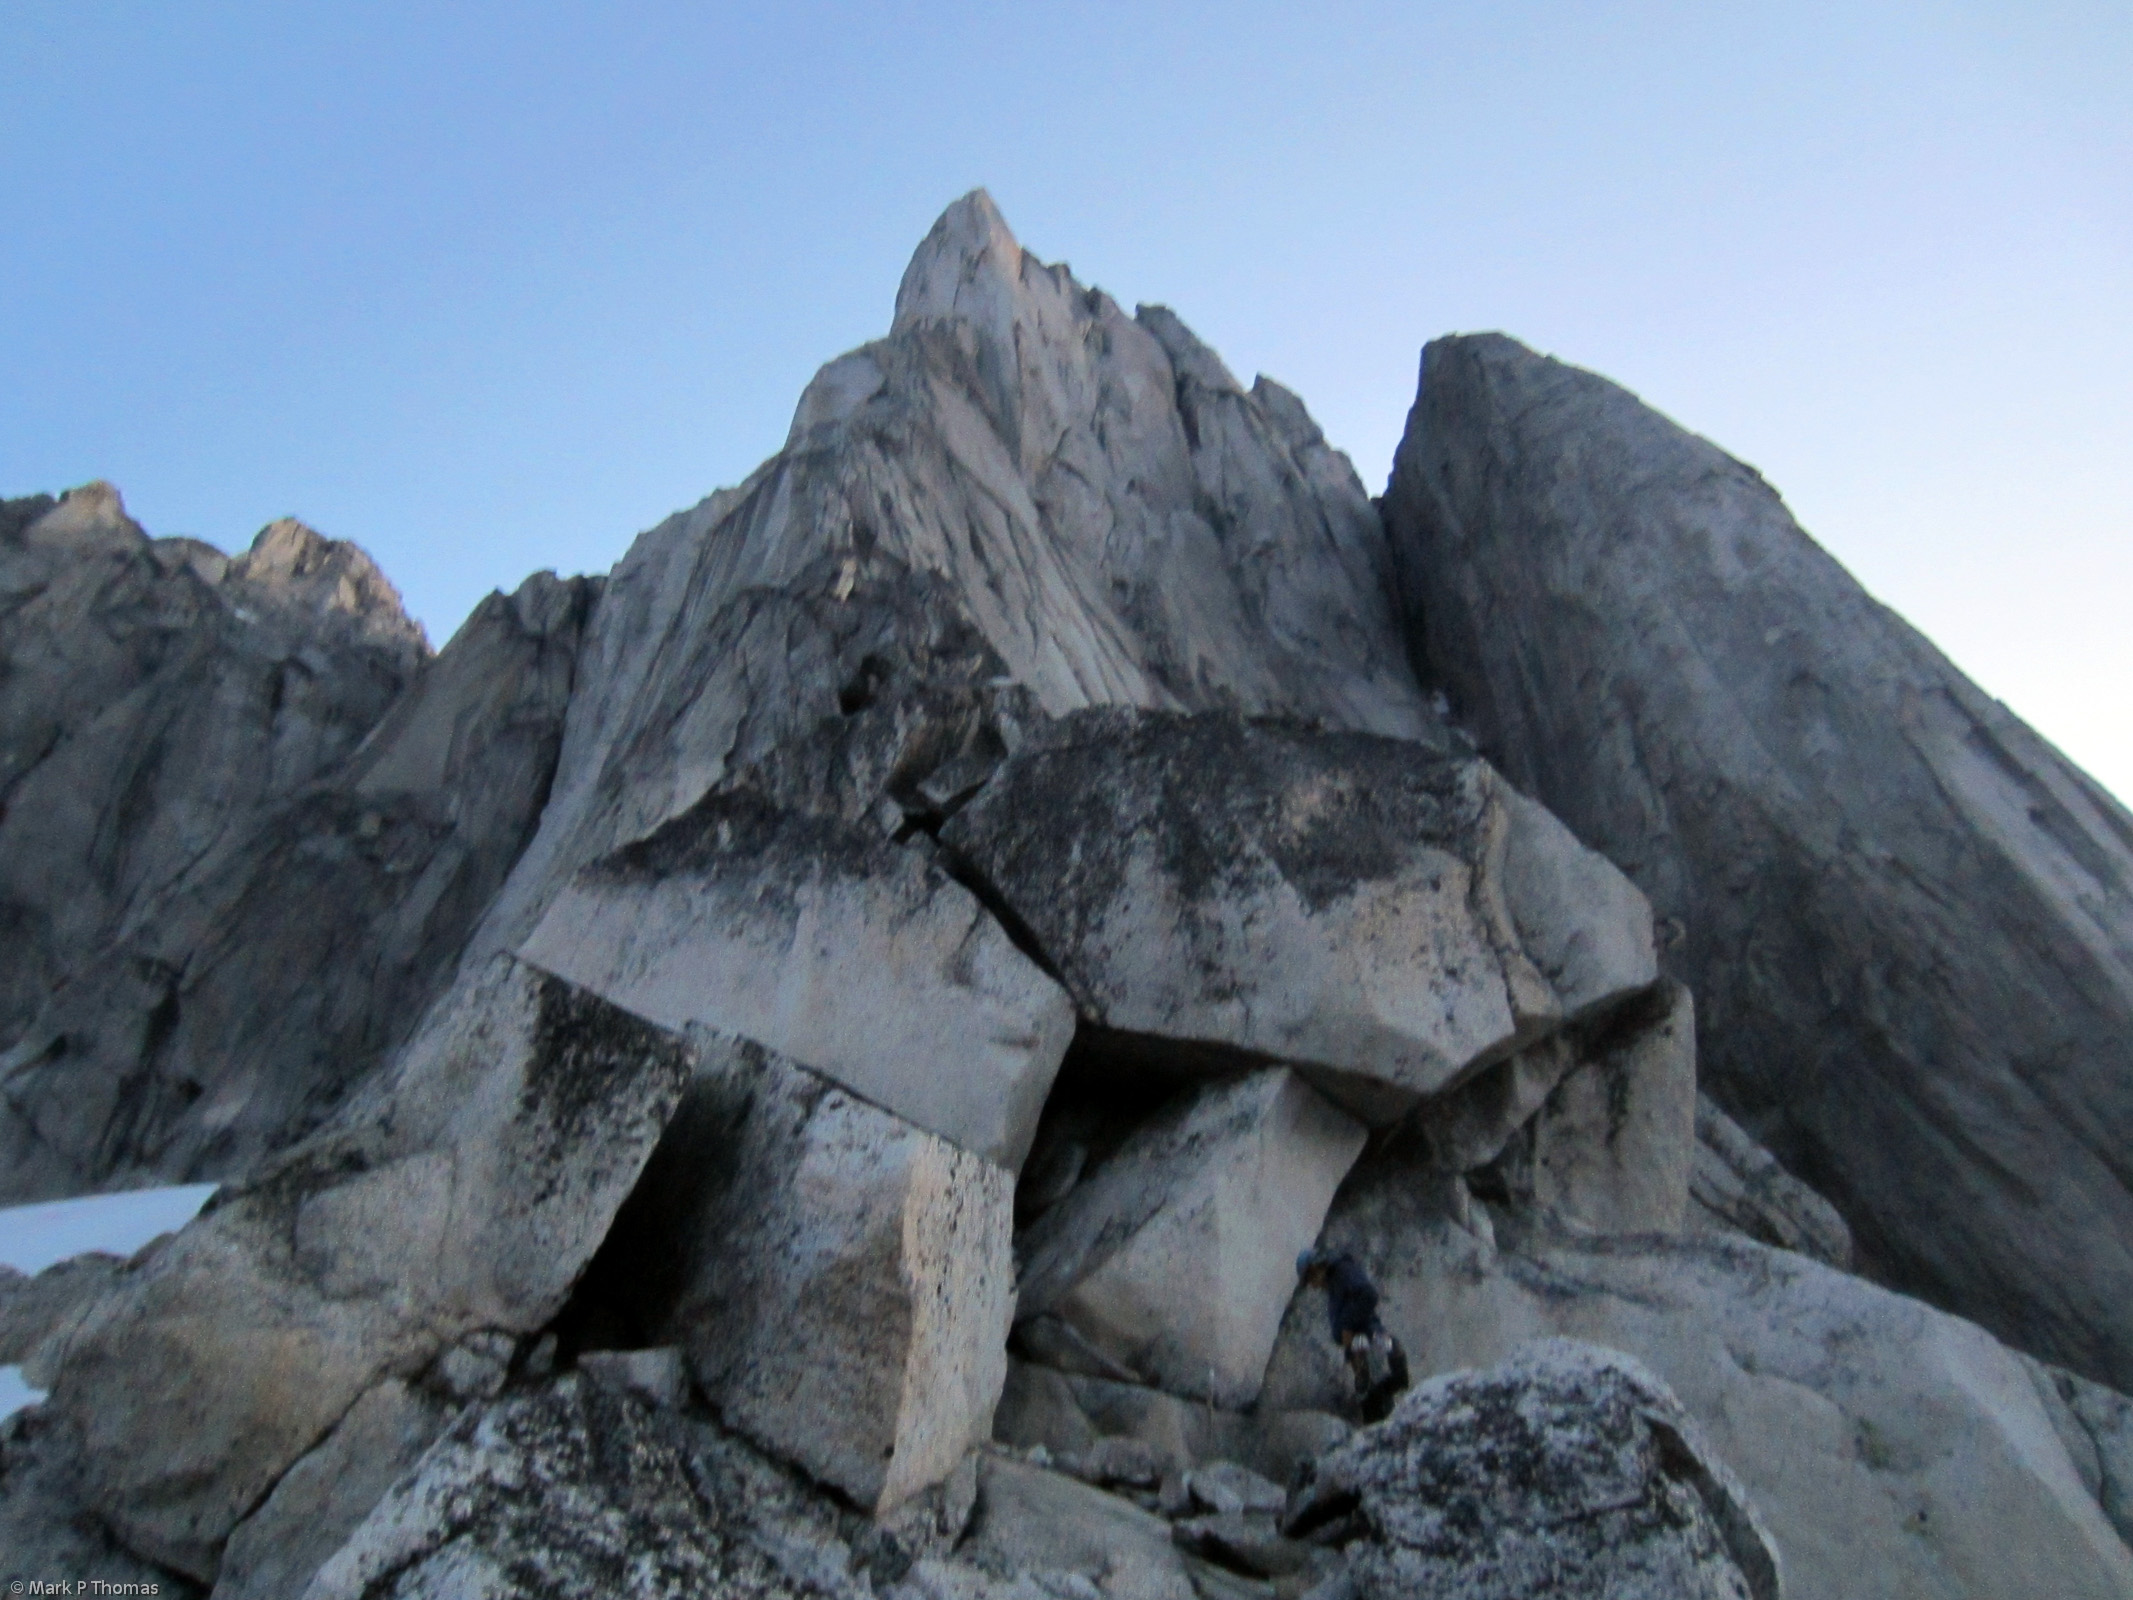 bergschrund is a topographical feature in